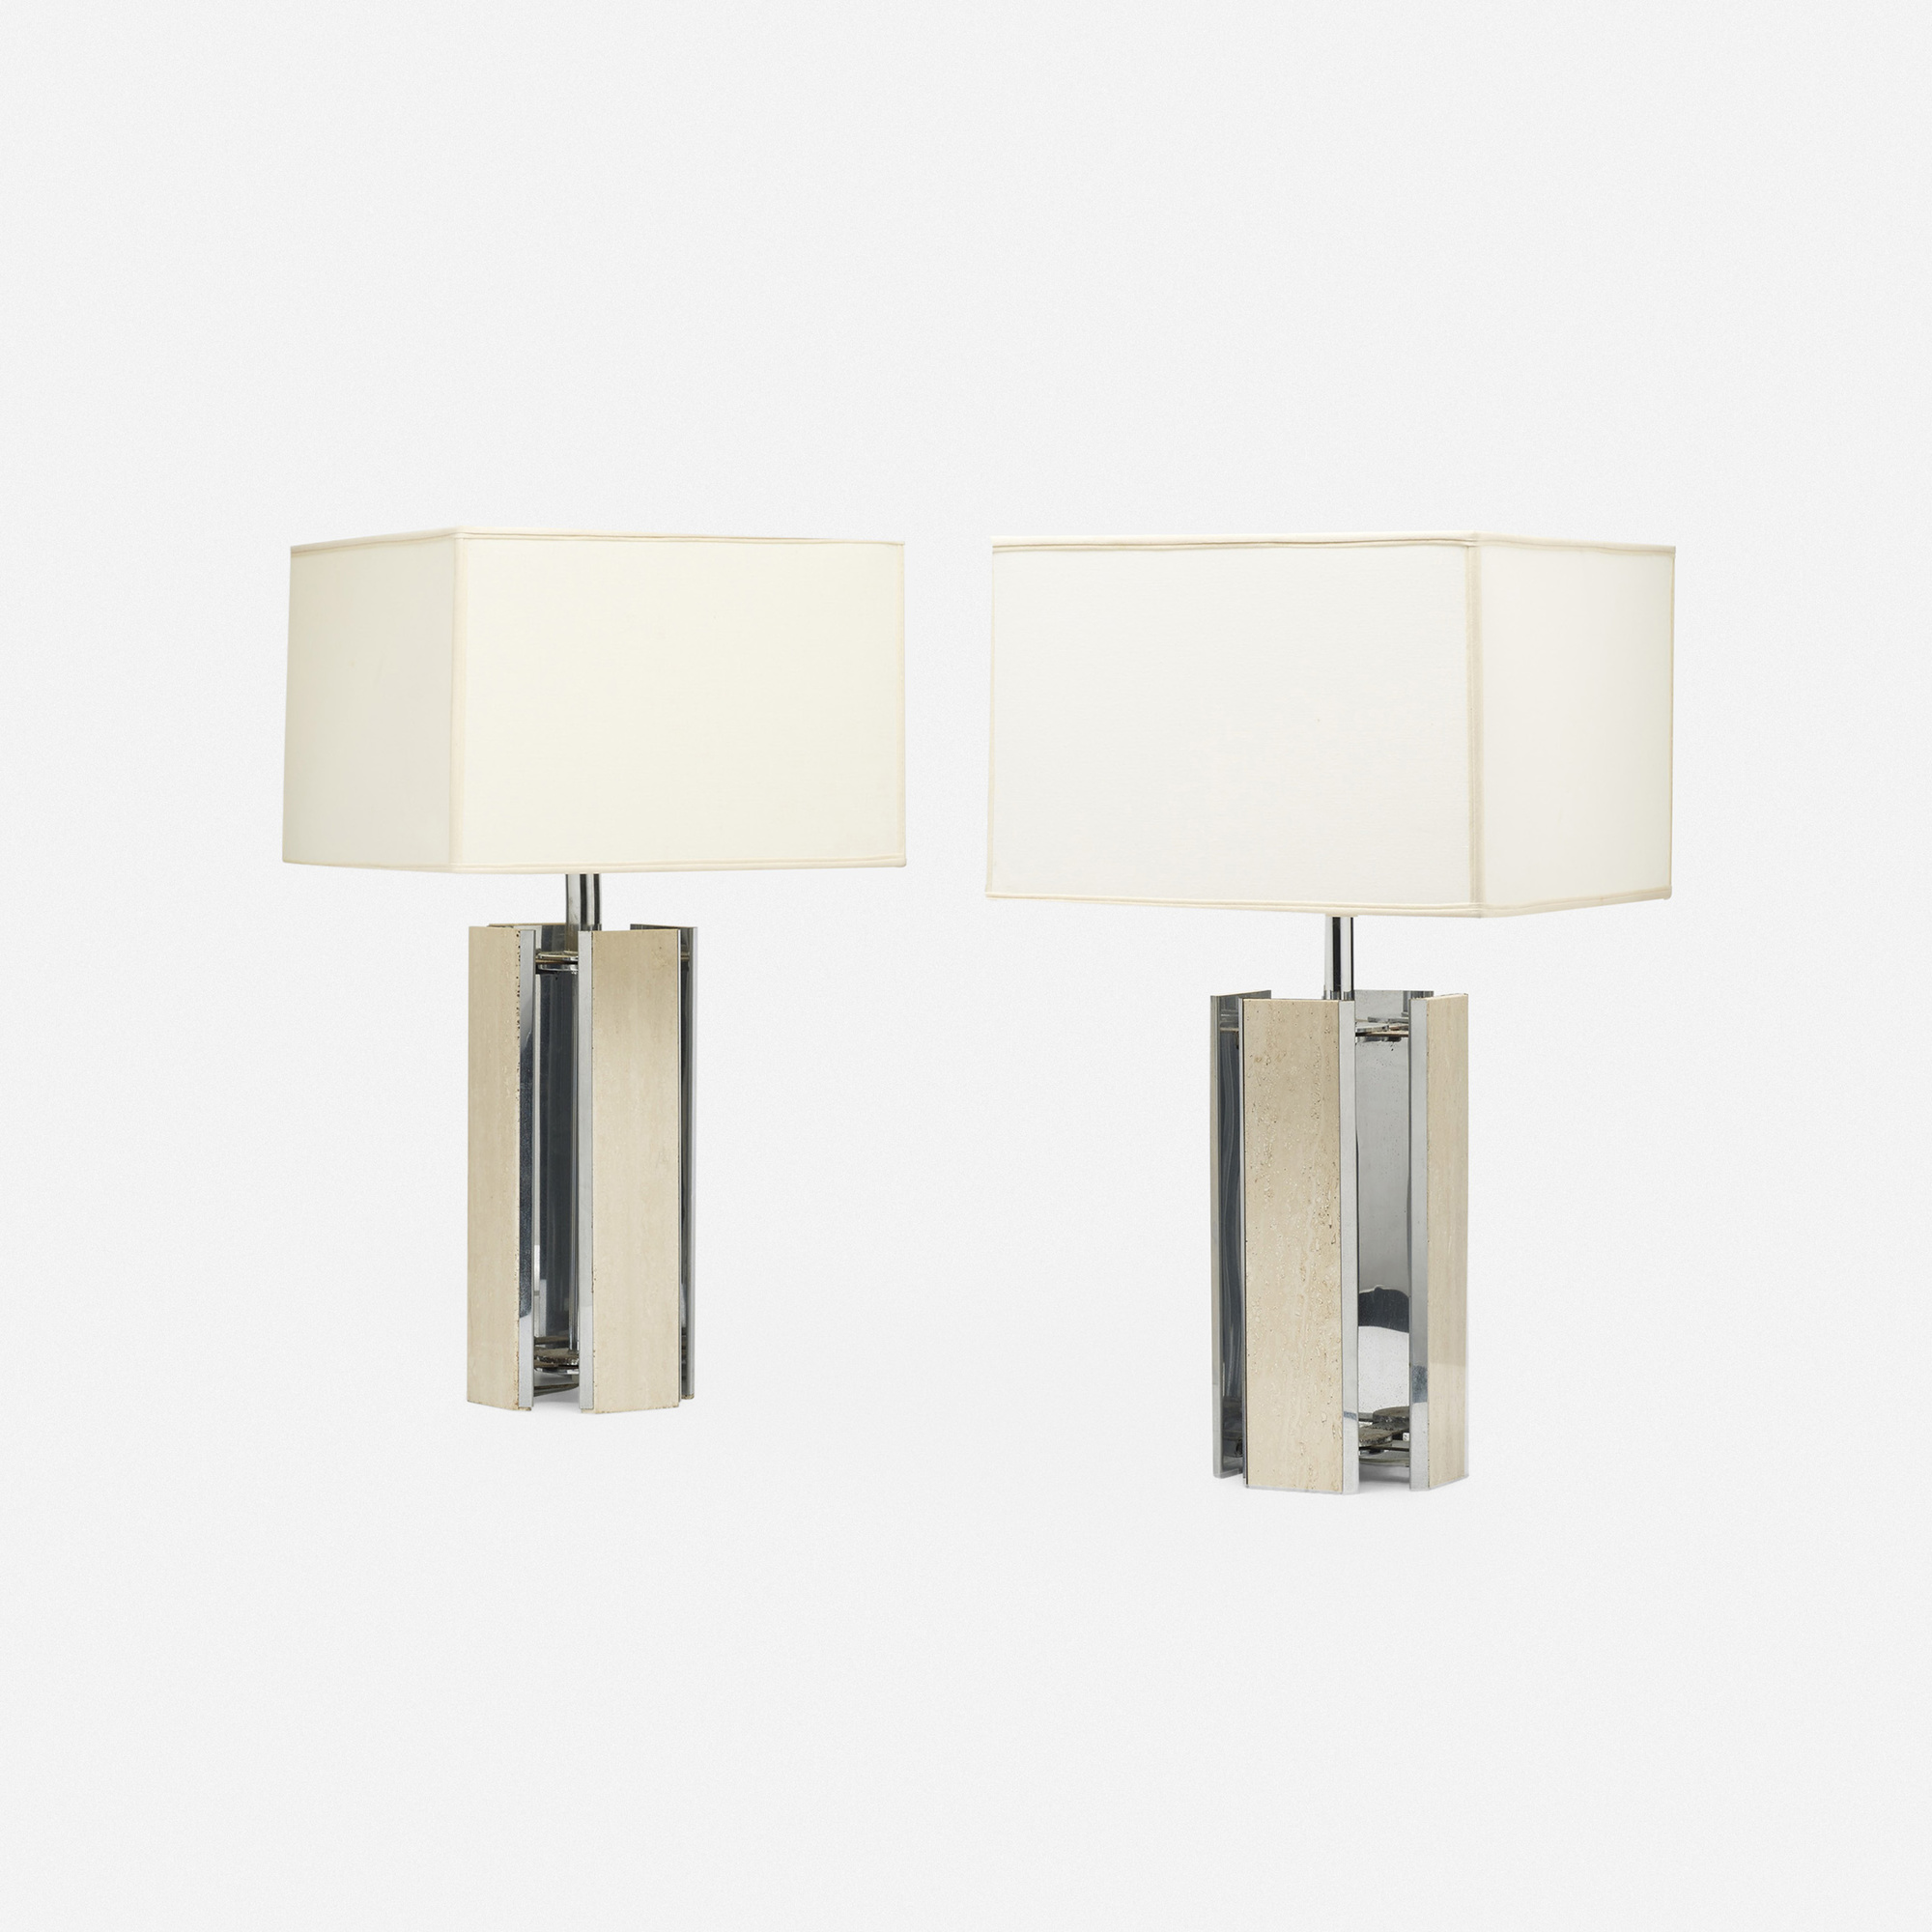 581: Modern / table lamps, pair (2 of 3)